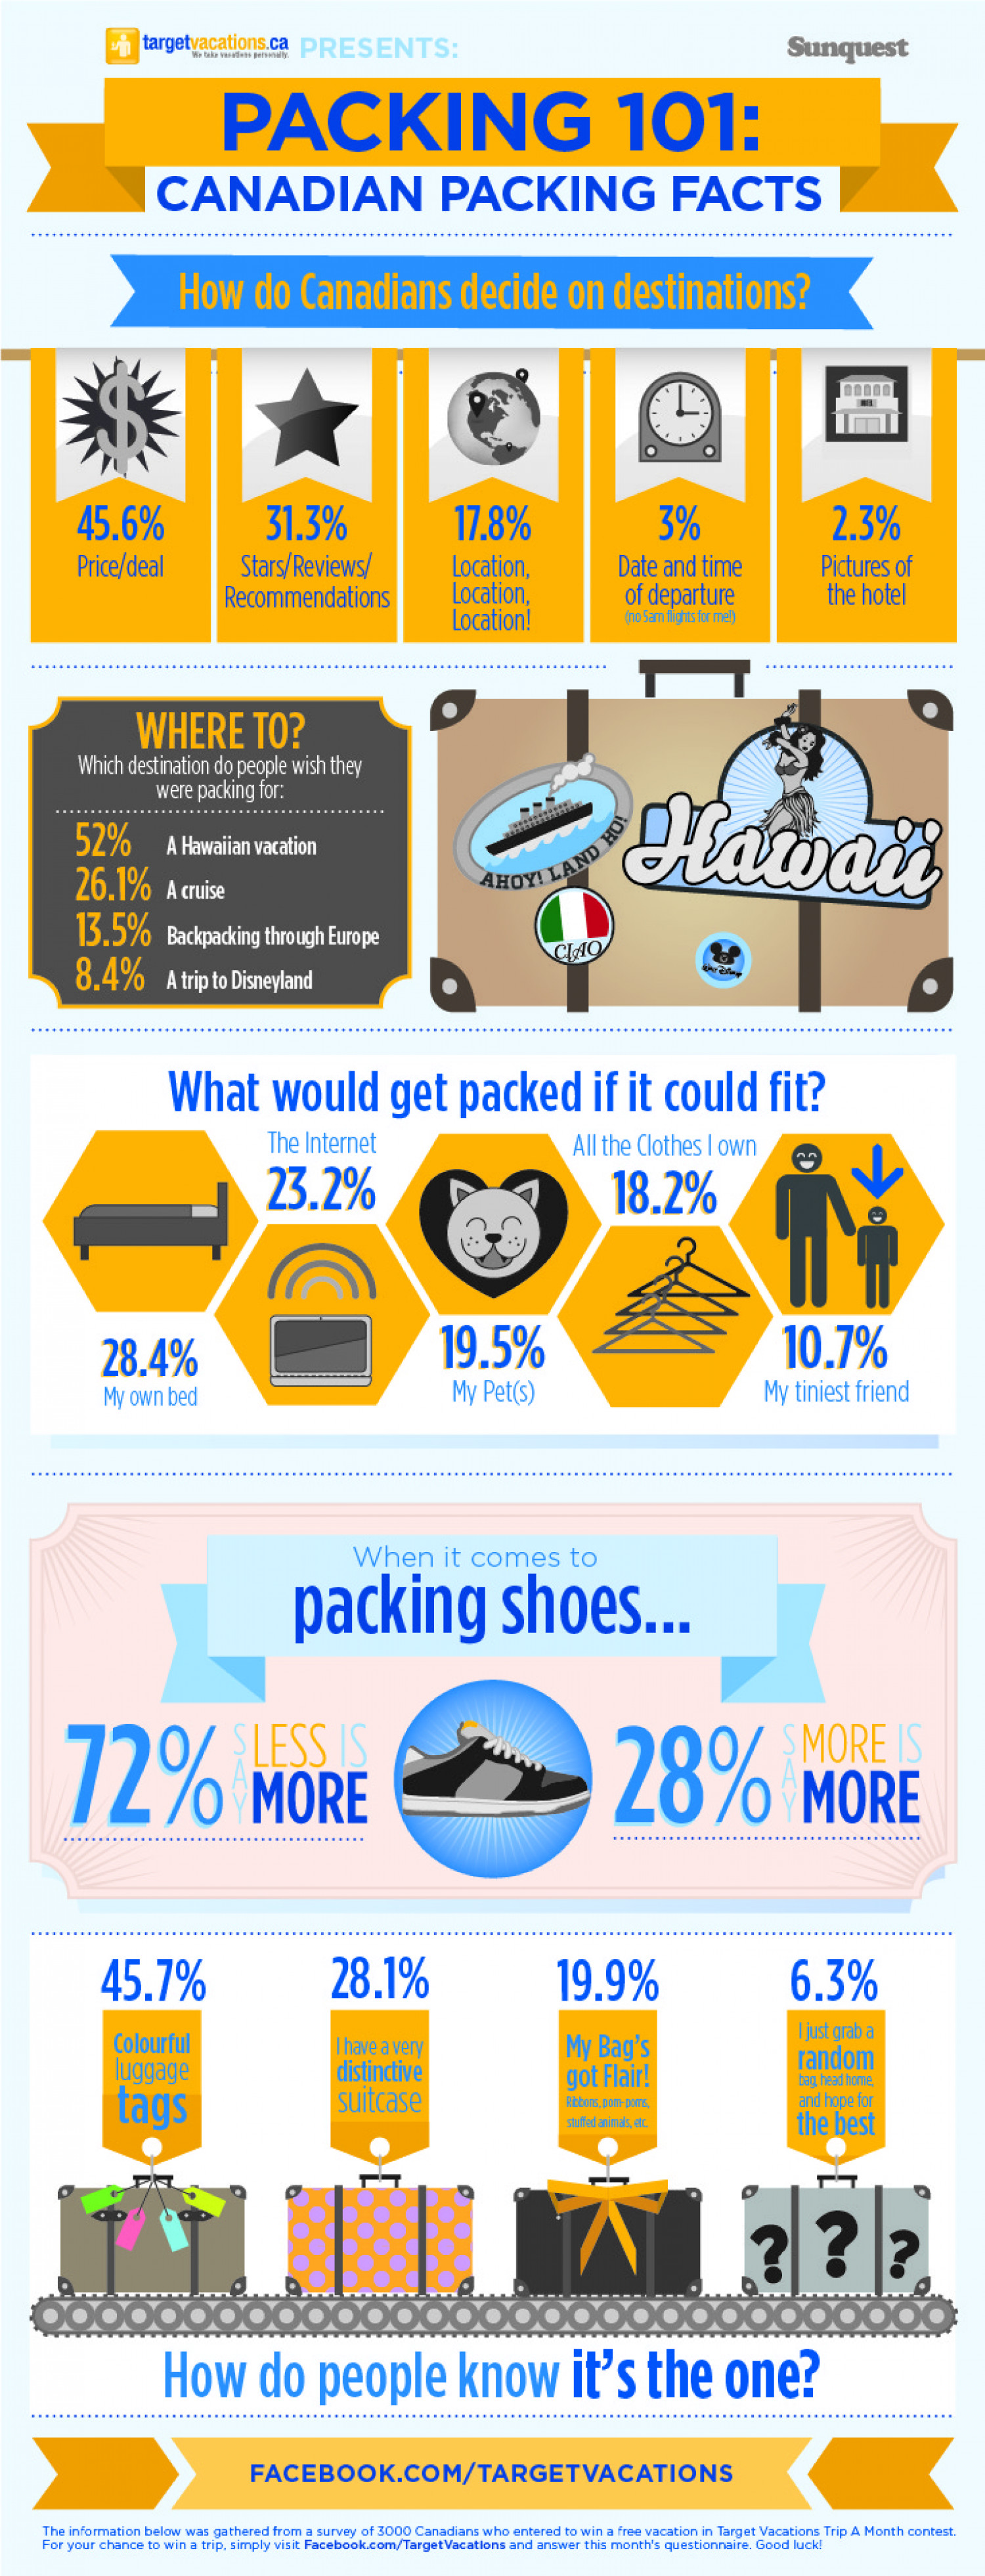 Packing 101: Canadian Packing Facts Infographic